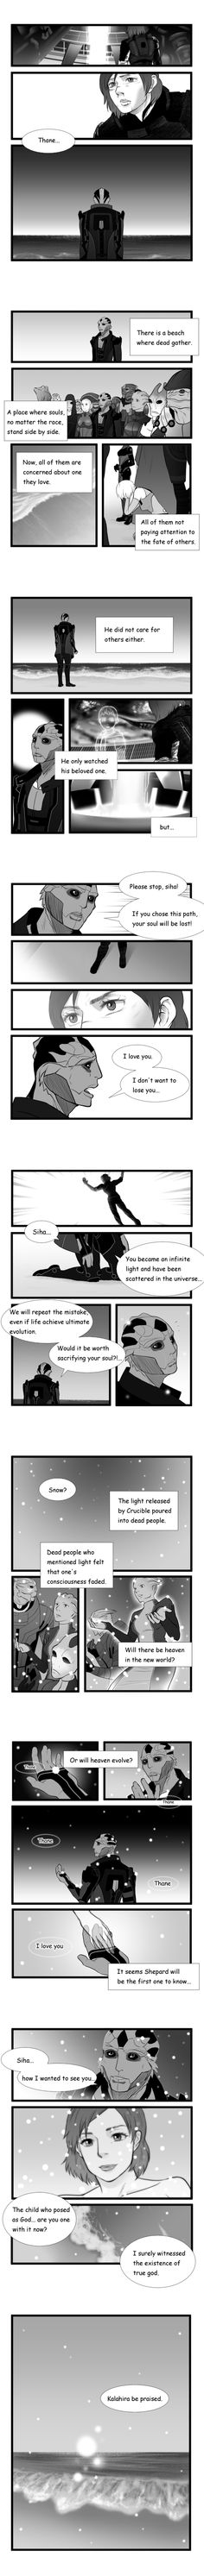 Synthesis snow-Credit: necthassak on DeviantArt  Note: (I always had some dissatisfaction toward ending of ME3. It is Synthesis end in Shep which one of the inside performs Thane and a romance of. I wanted two people to find happiness and drew this fan comic.)